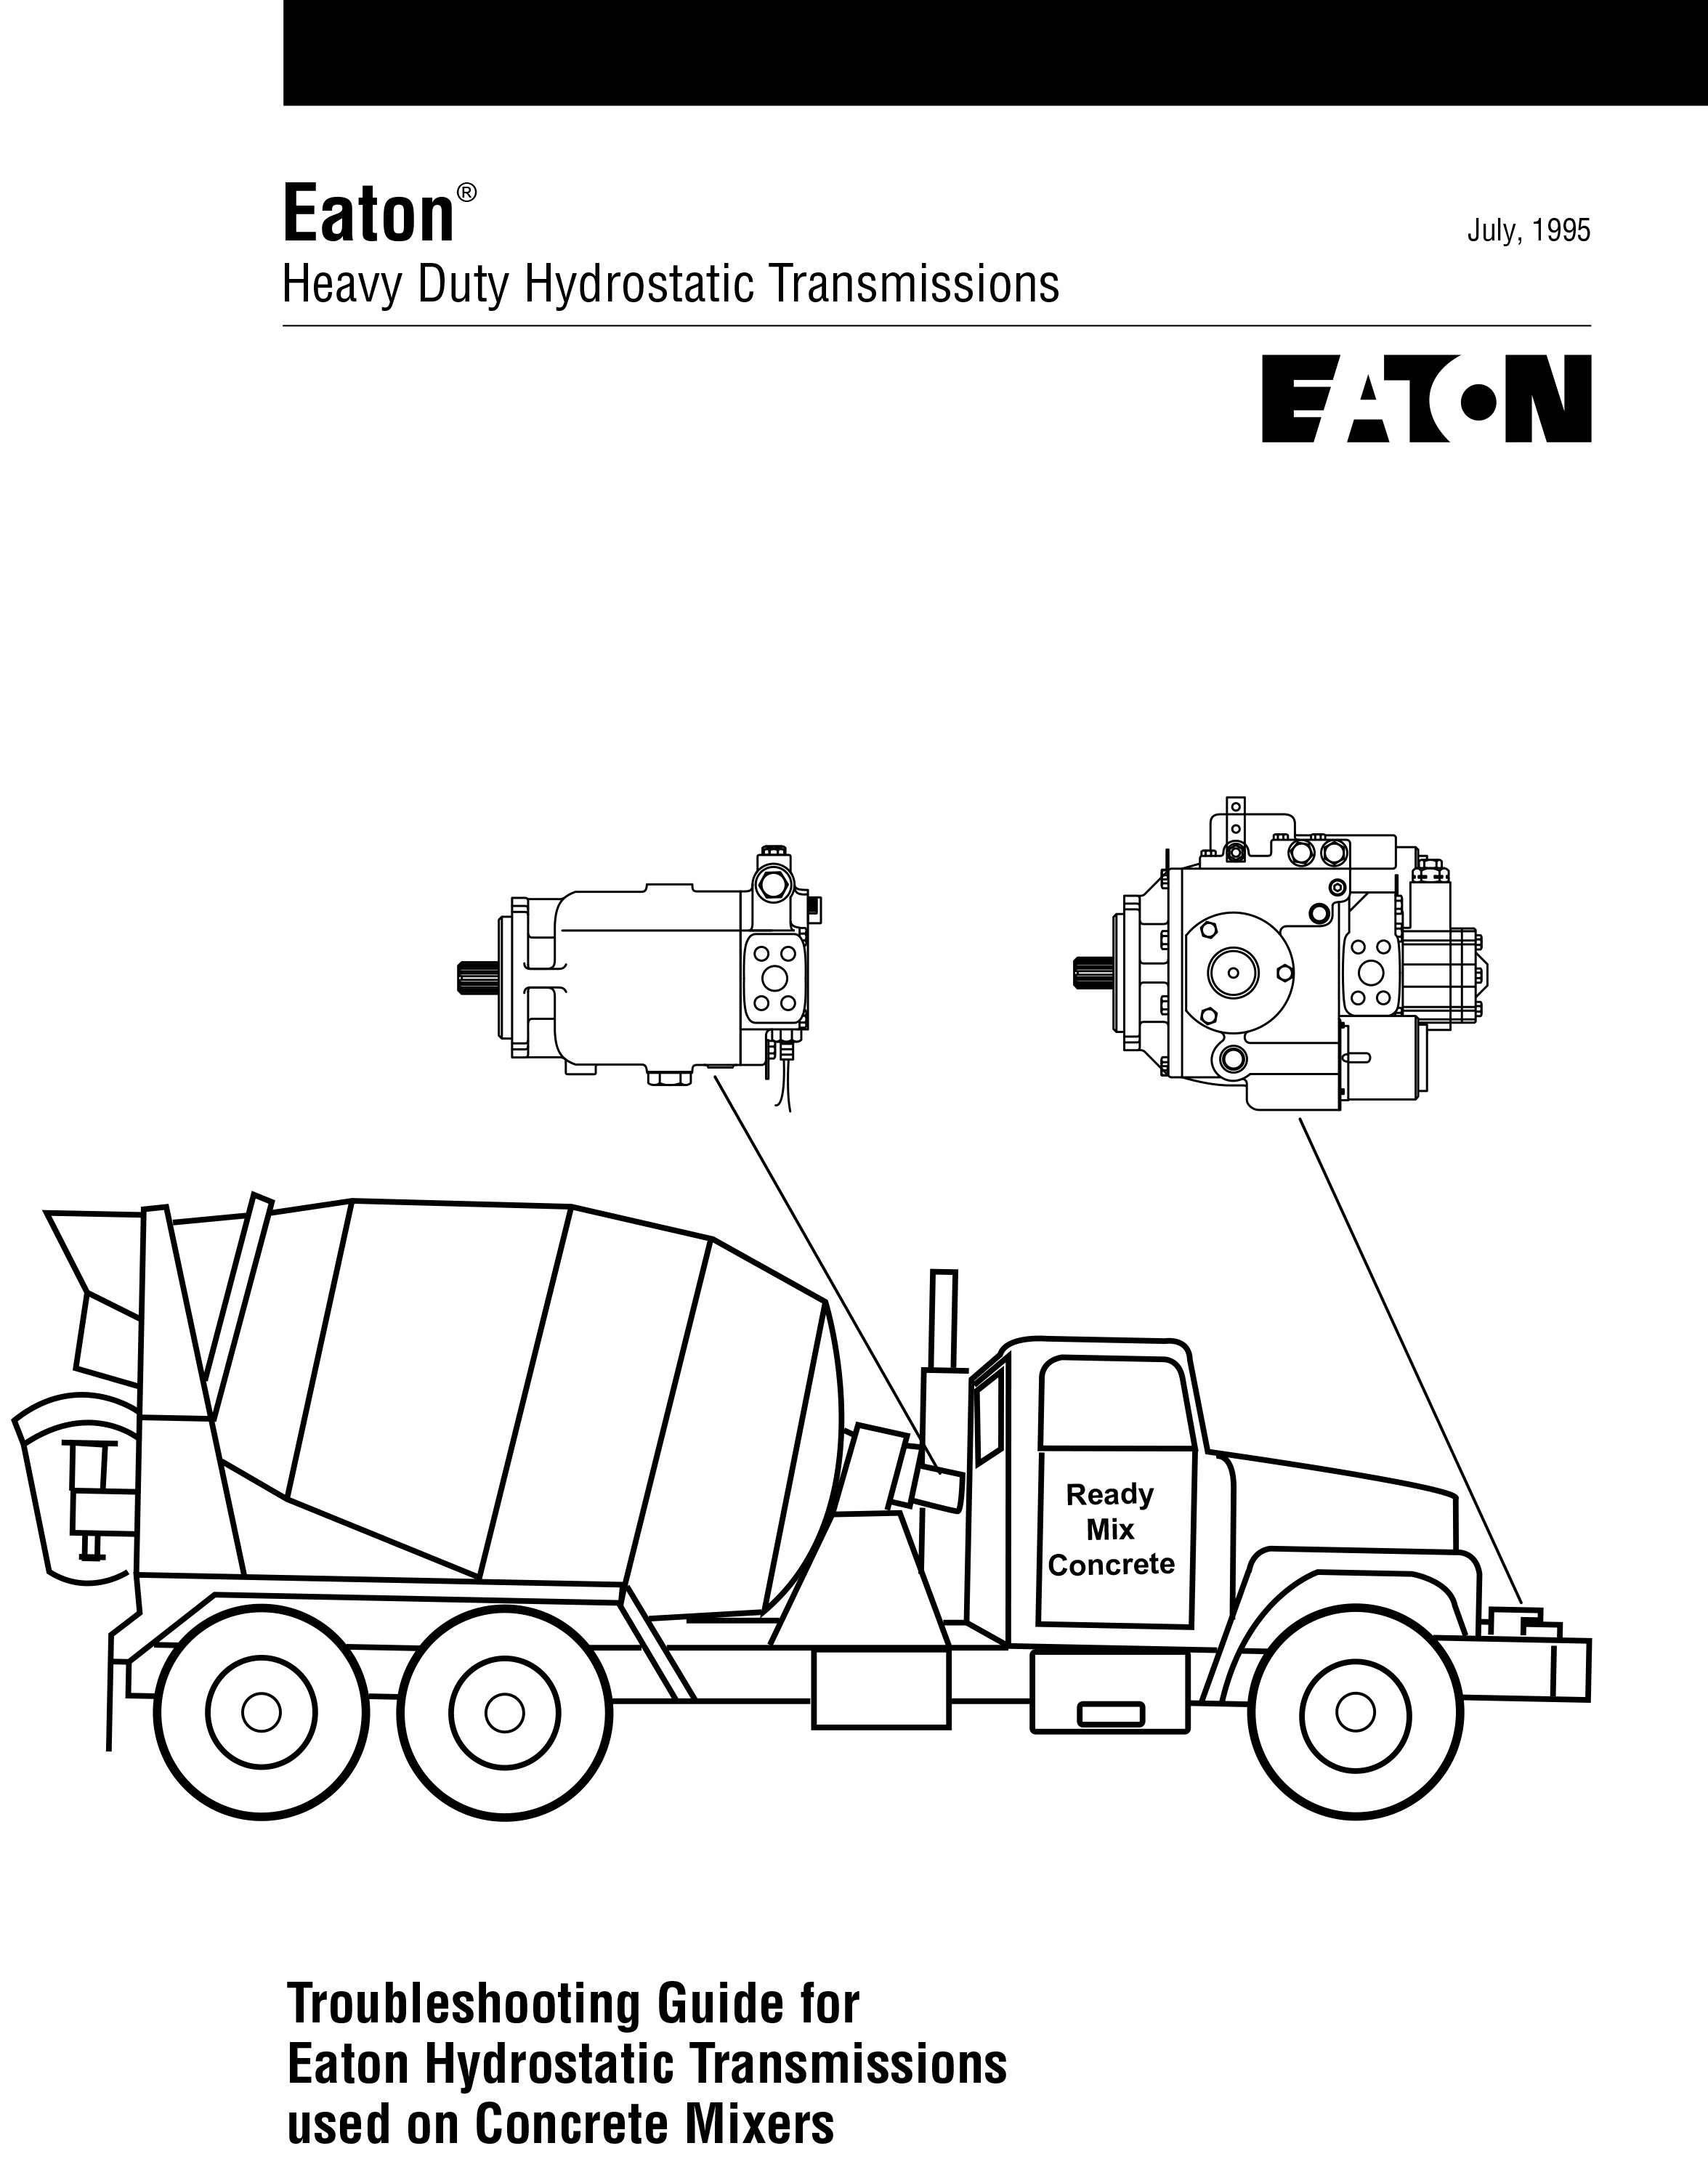 Eaton - Troubleshooting Guide Displacement Pump and Motor